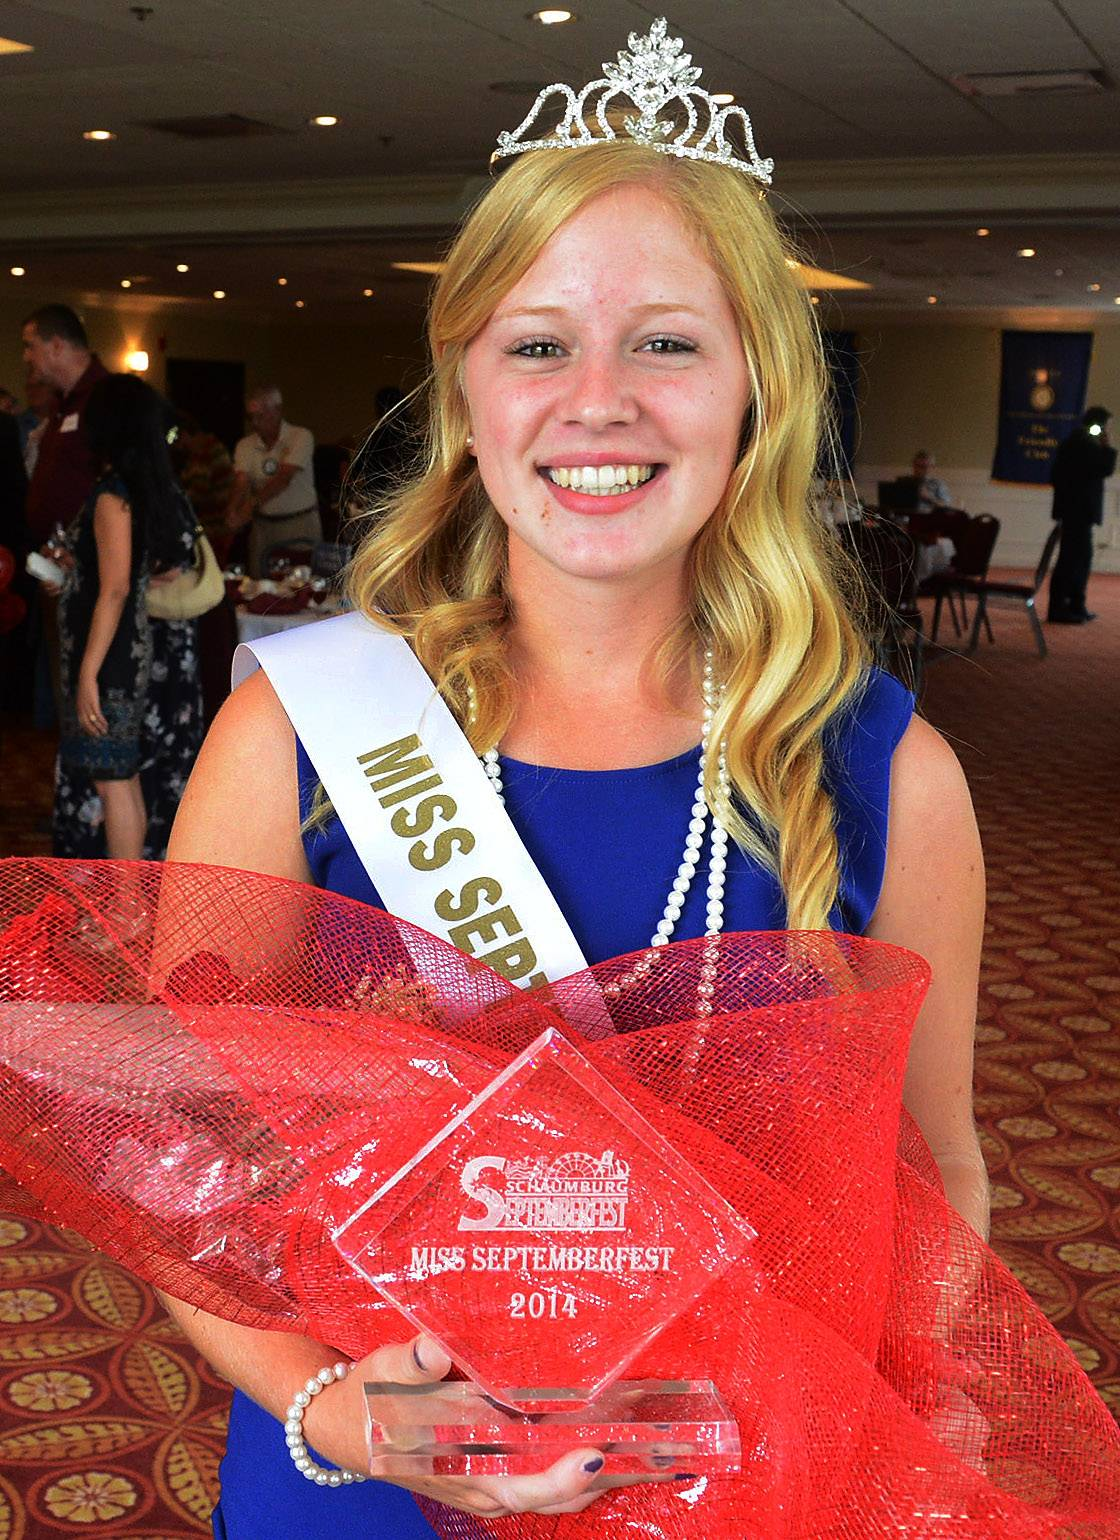 Carly Bryeans, 17, of Conant High School is Schaumburg's Miss Septemberfest 2014.